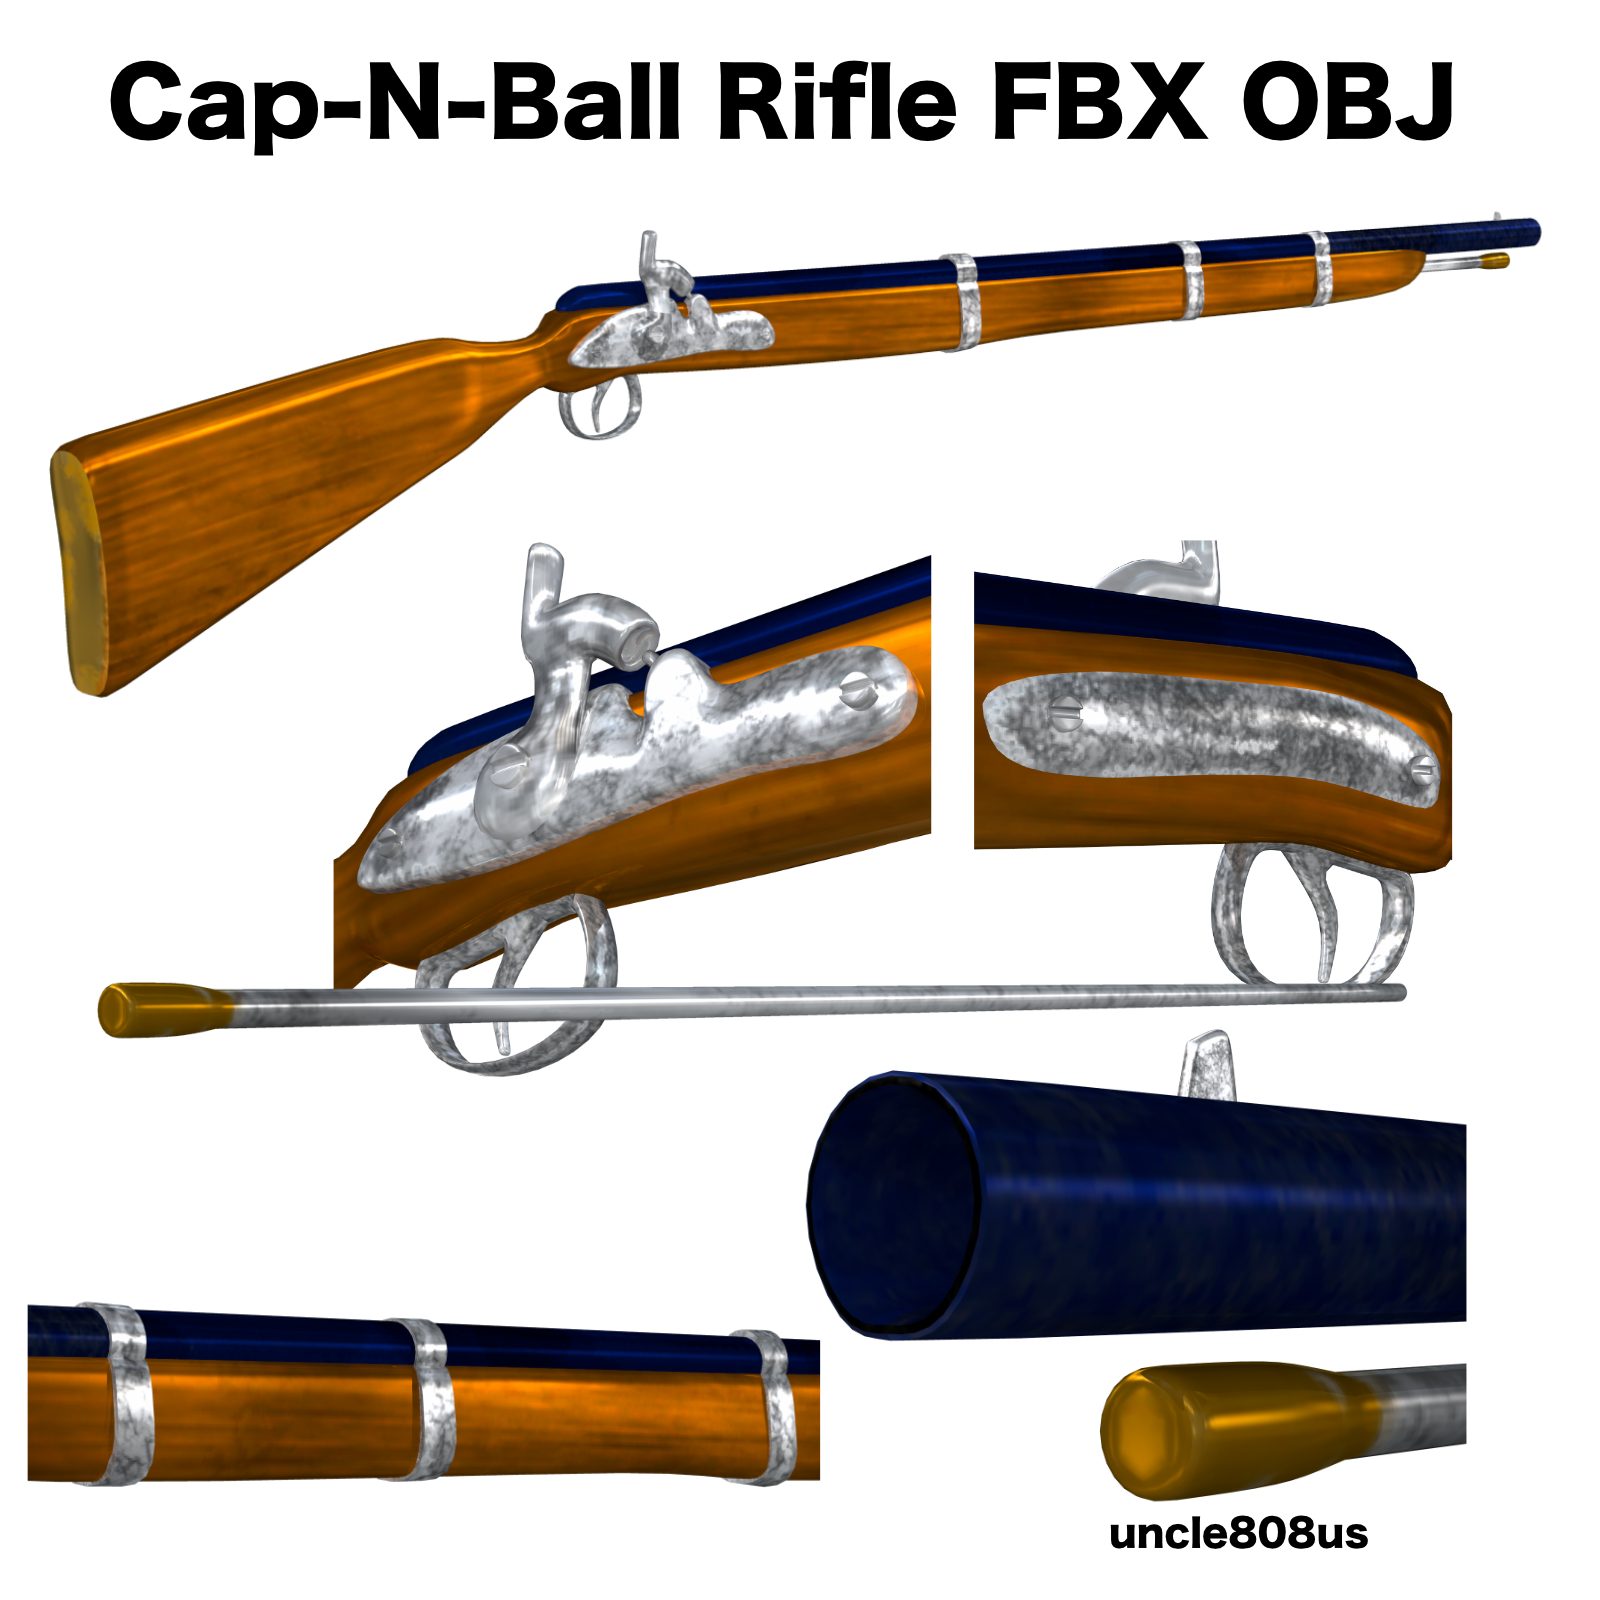 cap-n-ball rifle fbx obj 3d model fbx 220981